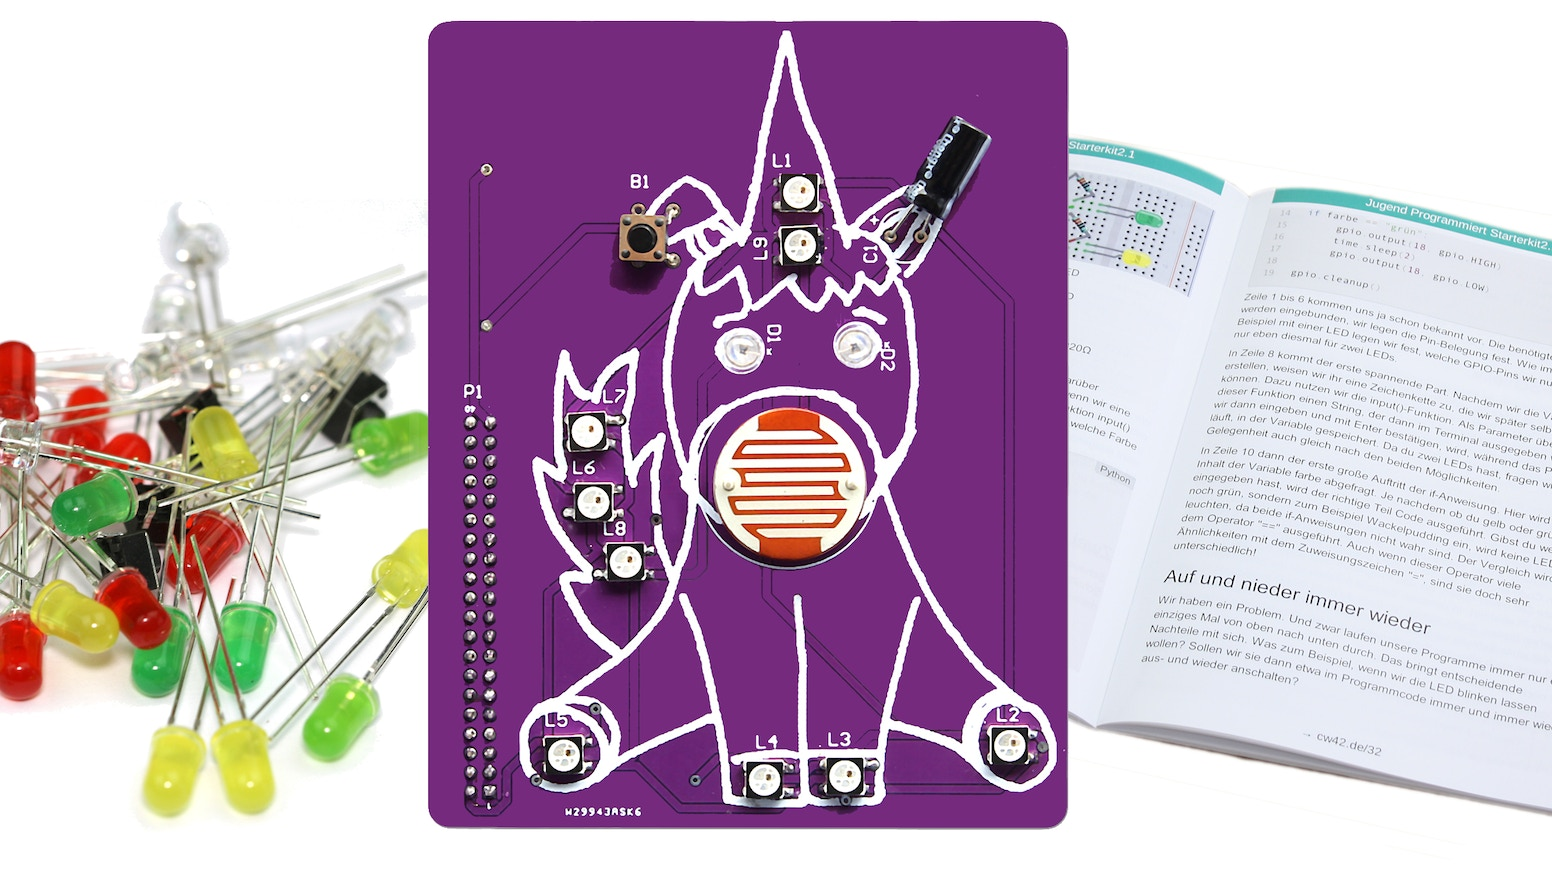 Coding Unicorn Shield, RGB LED Shield for Raspberry Pi & Arduino. Cuteness and style for your projects. Learn to code, book included.